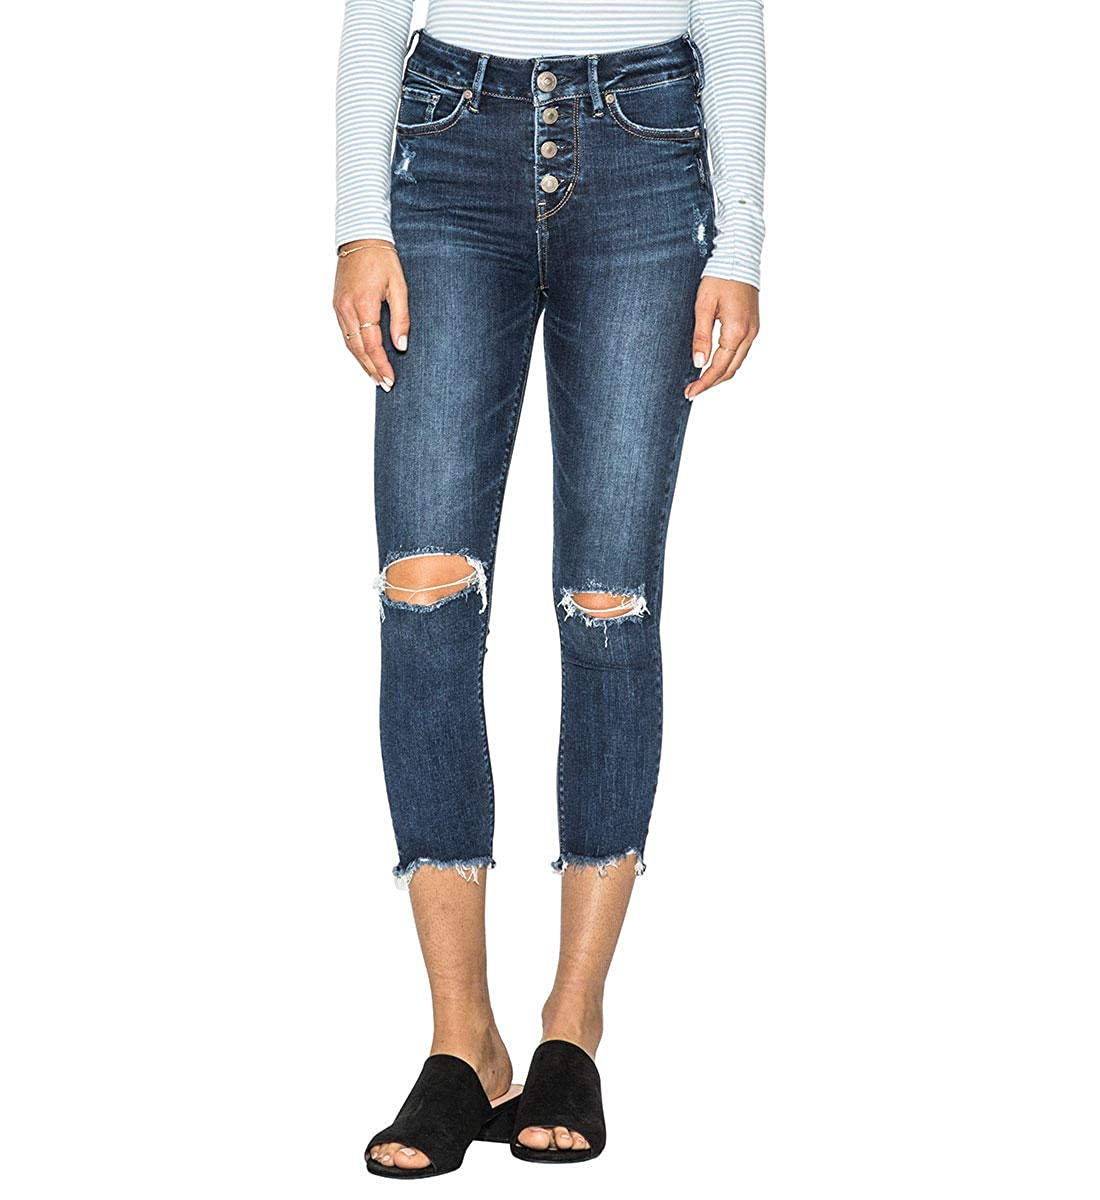 a341e7af72c Amazon.com  Silver Jeans Co. Women s Mazy Straight-fit High-Rise Skinny  Crop Jeans  Clothing